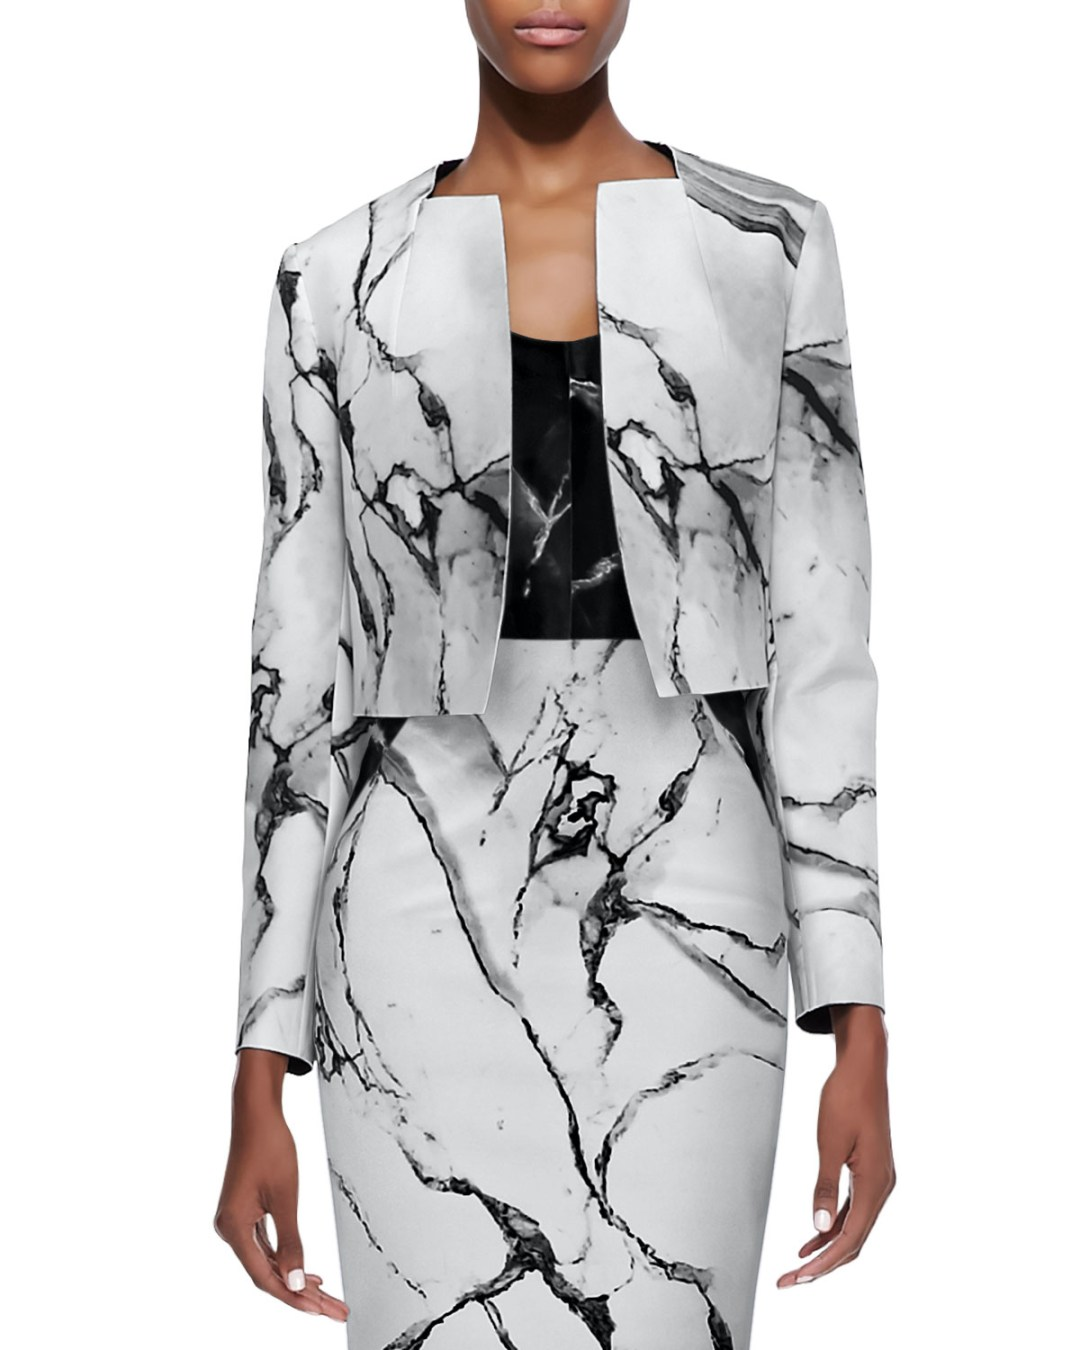 Marble print jacket by Robert Rodriguez